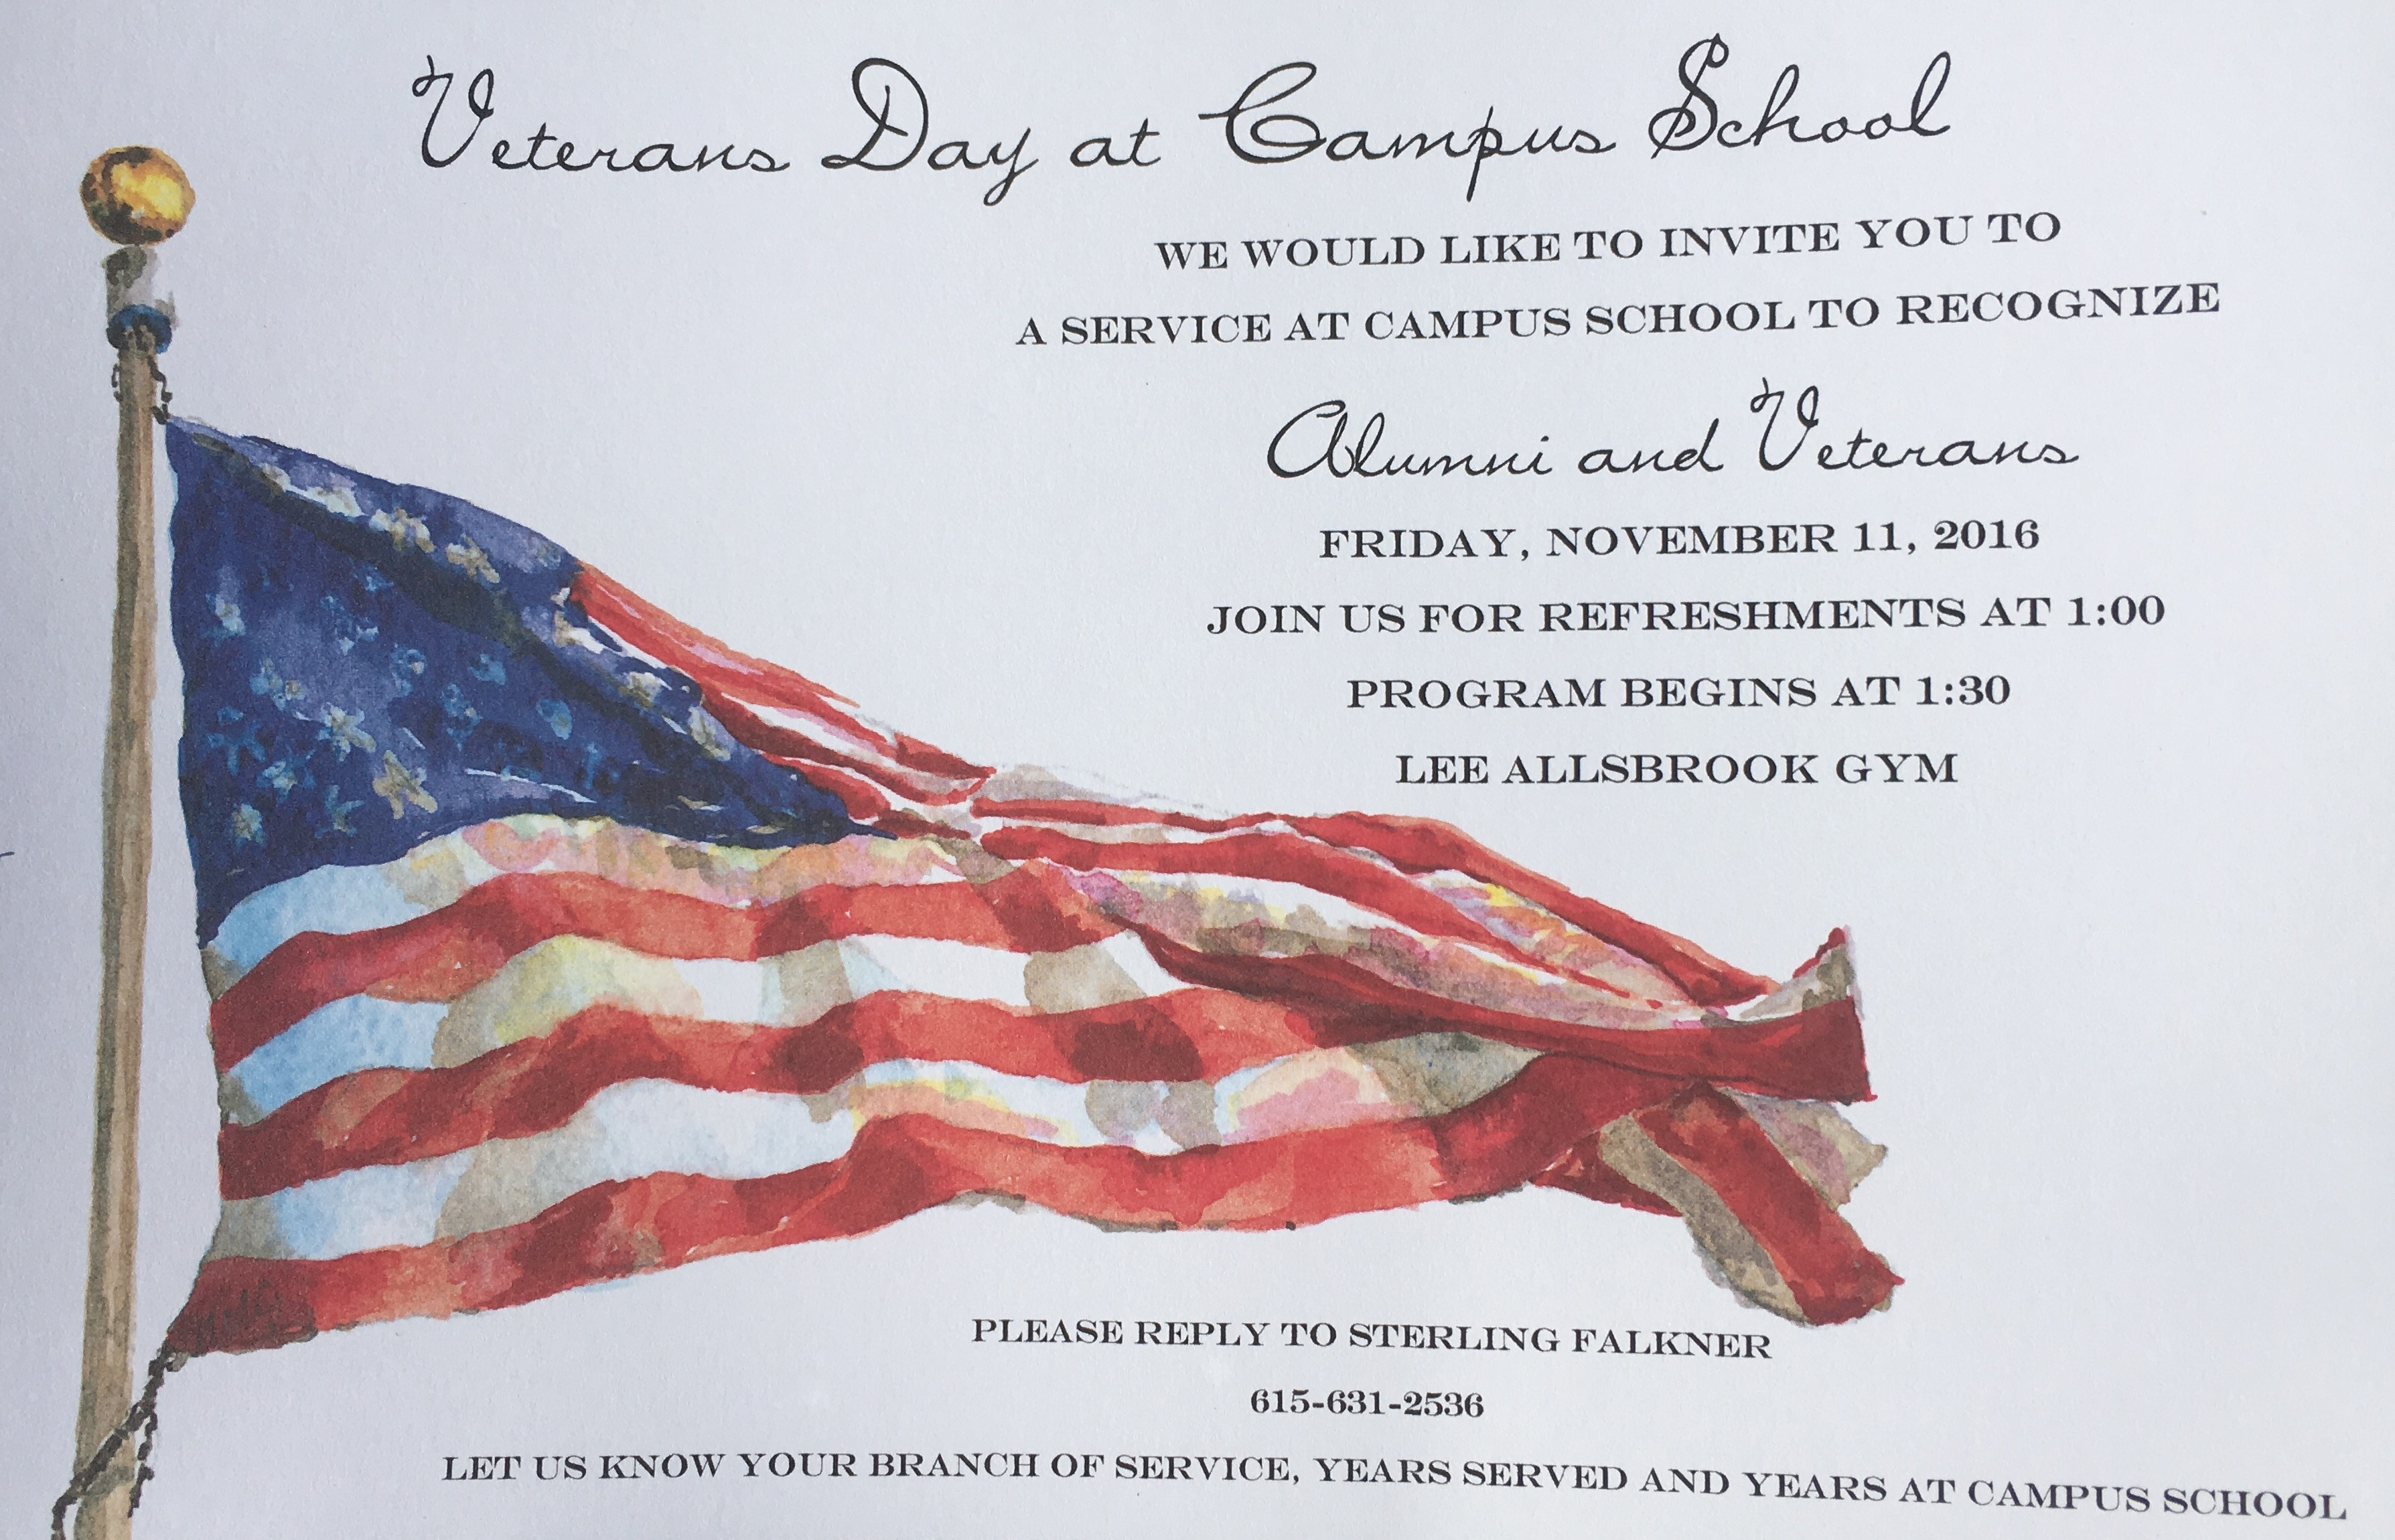 Veterans and Alumni at the Campus School Wanted